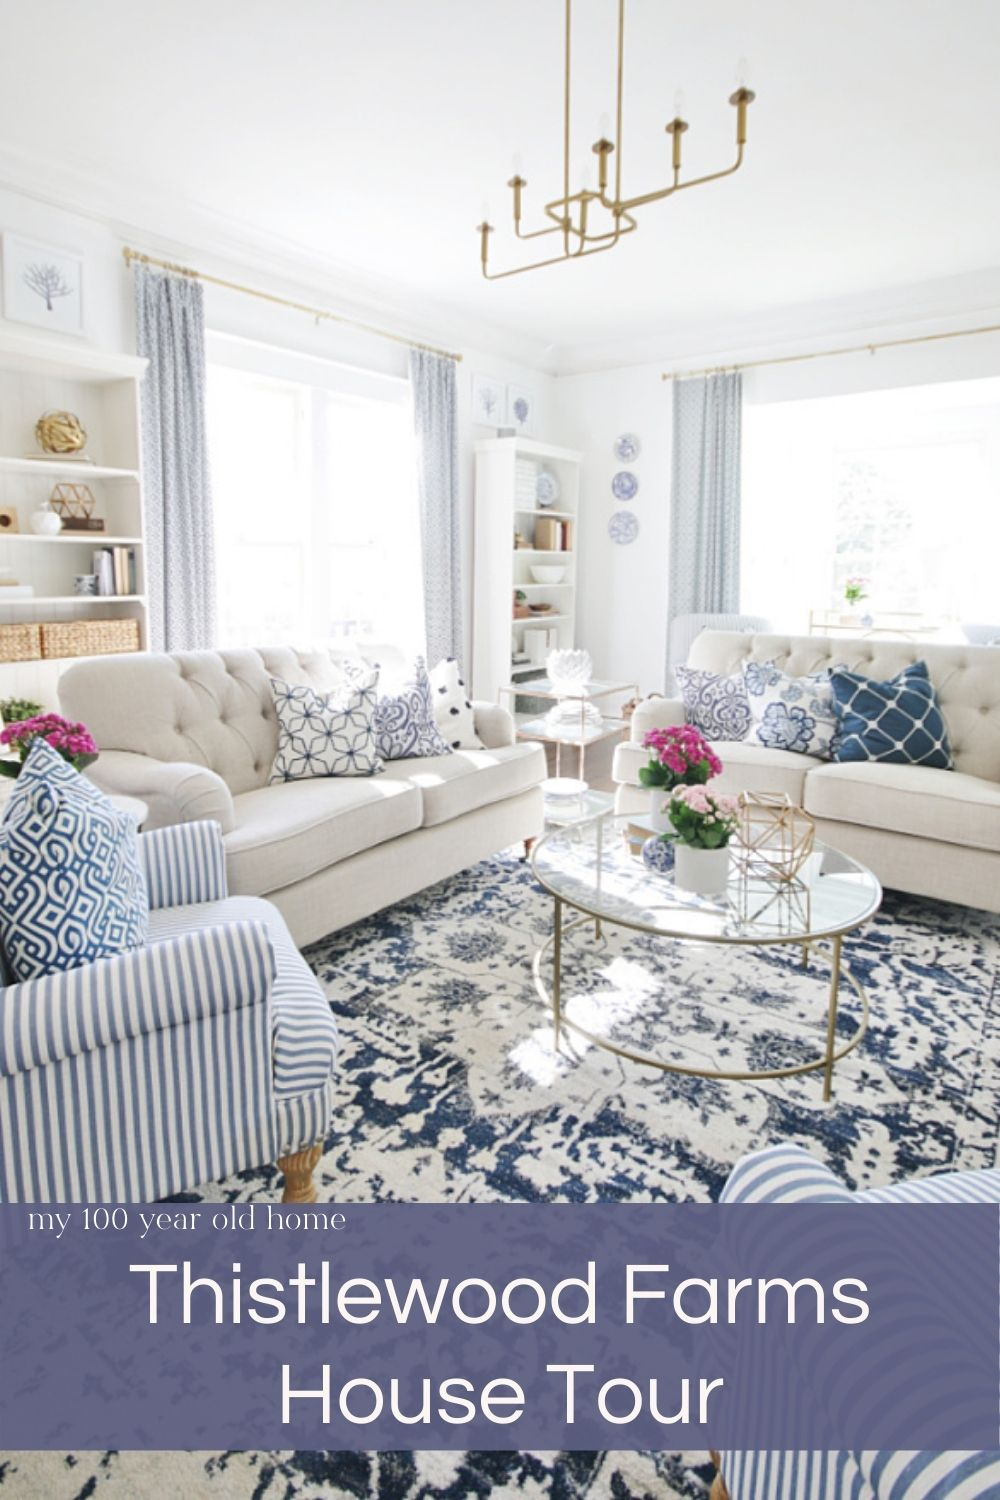 Today I am sharing an in-home house tour with KariAnne at Thistlewood! Her home is not only gorgeous but it is also amazing!